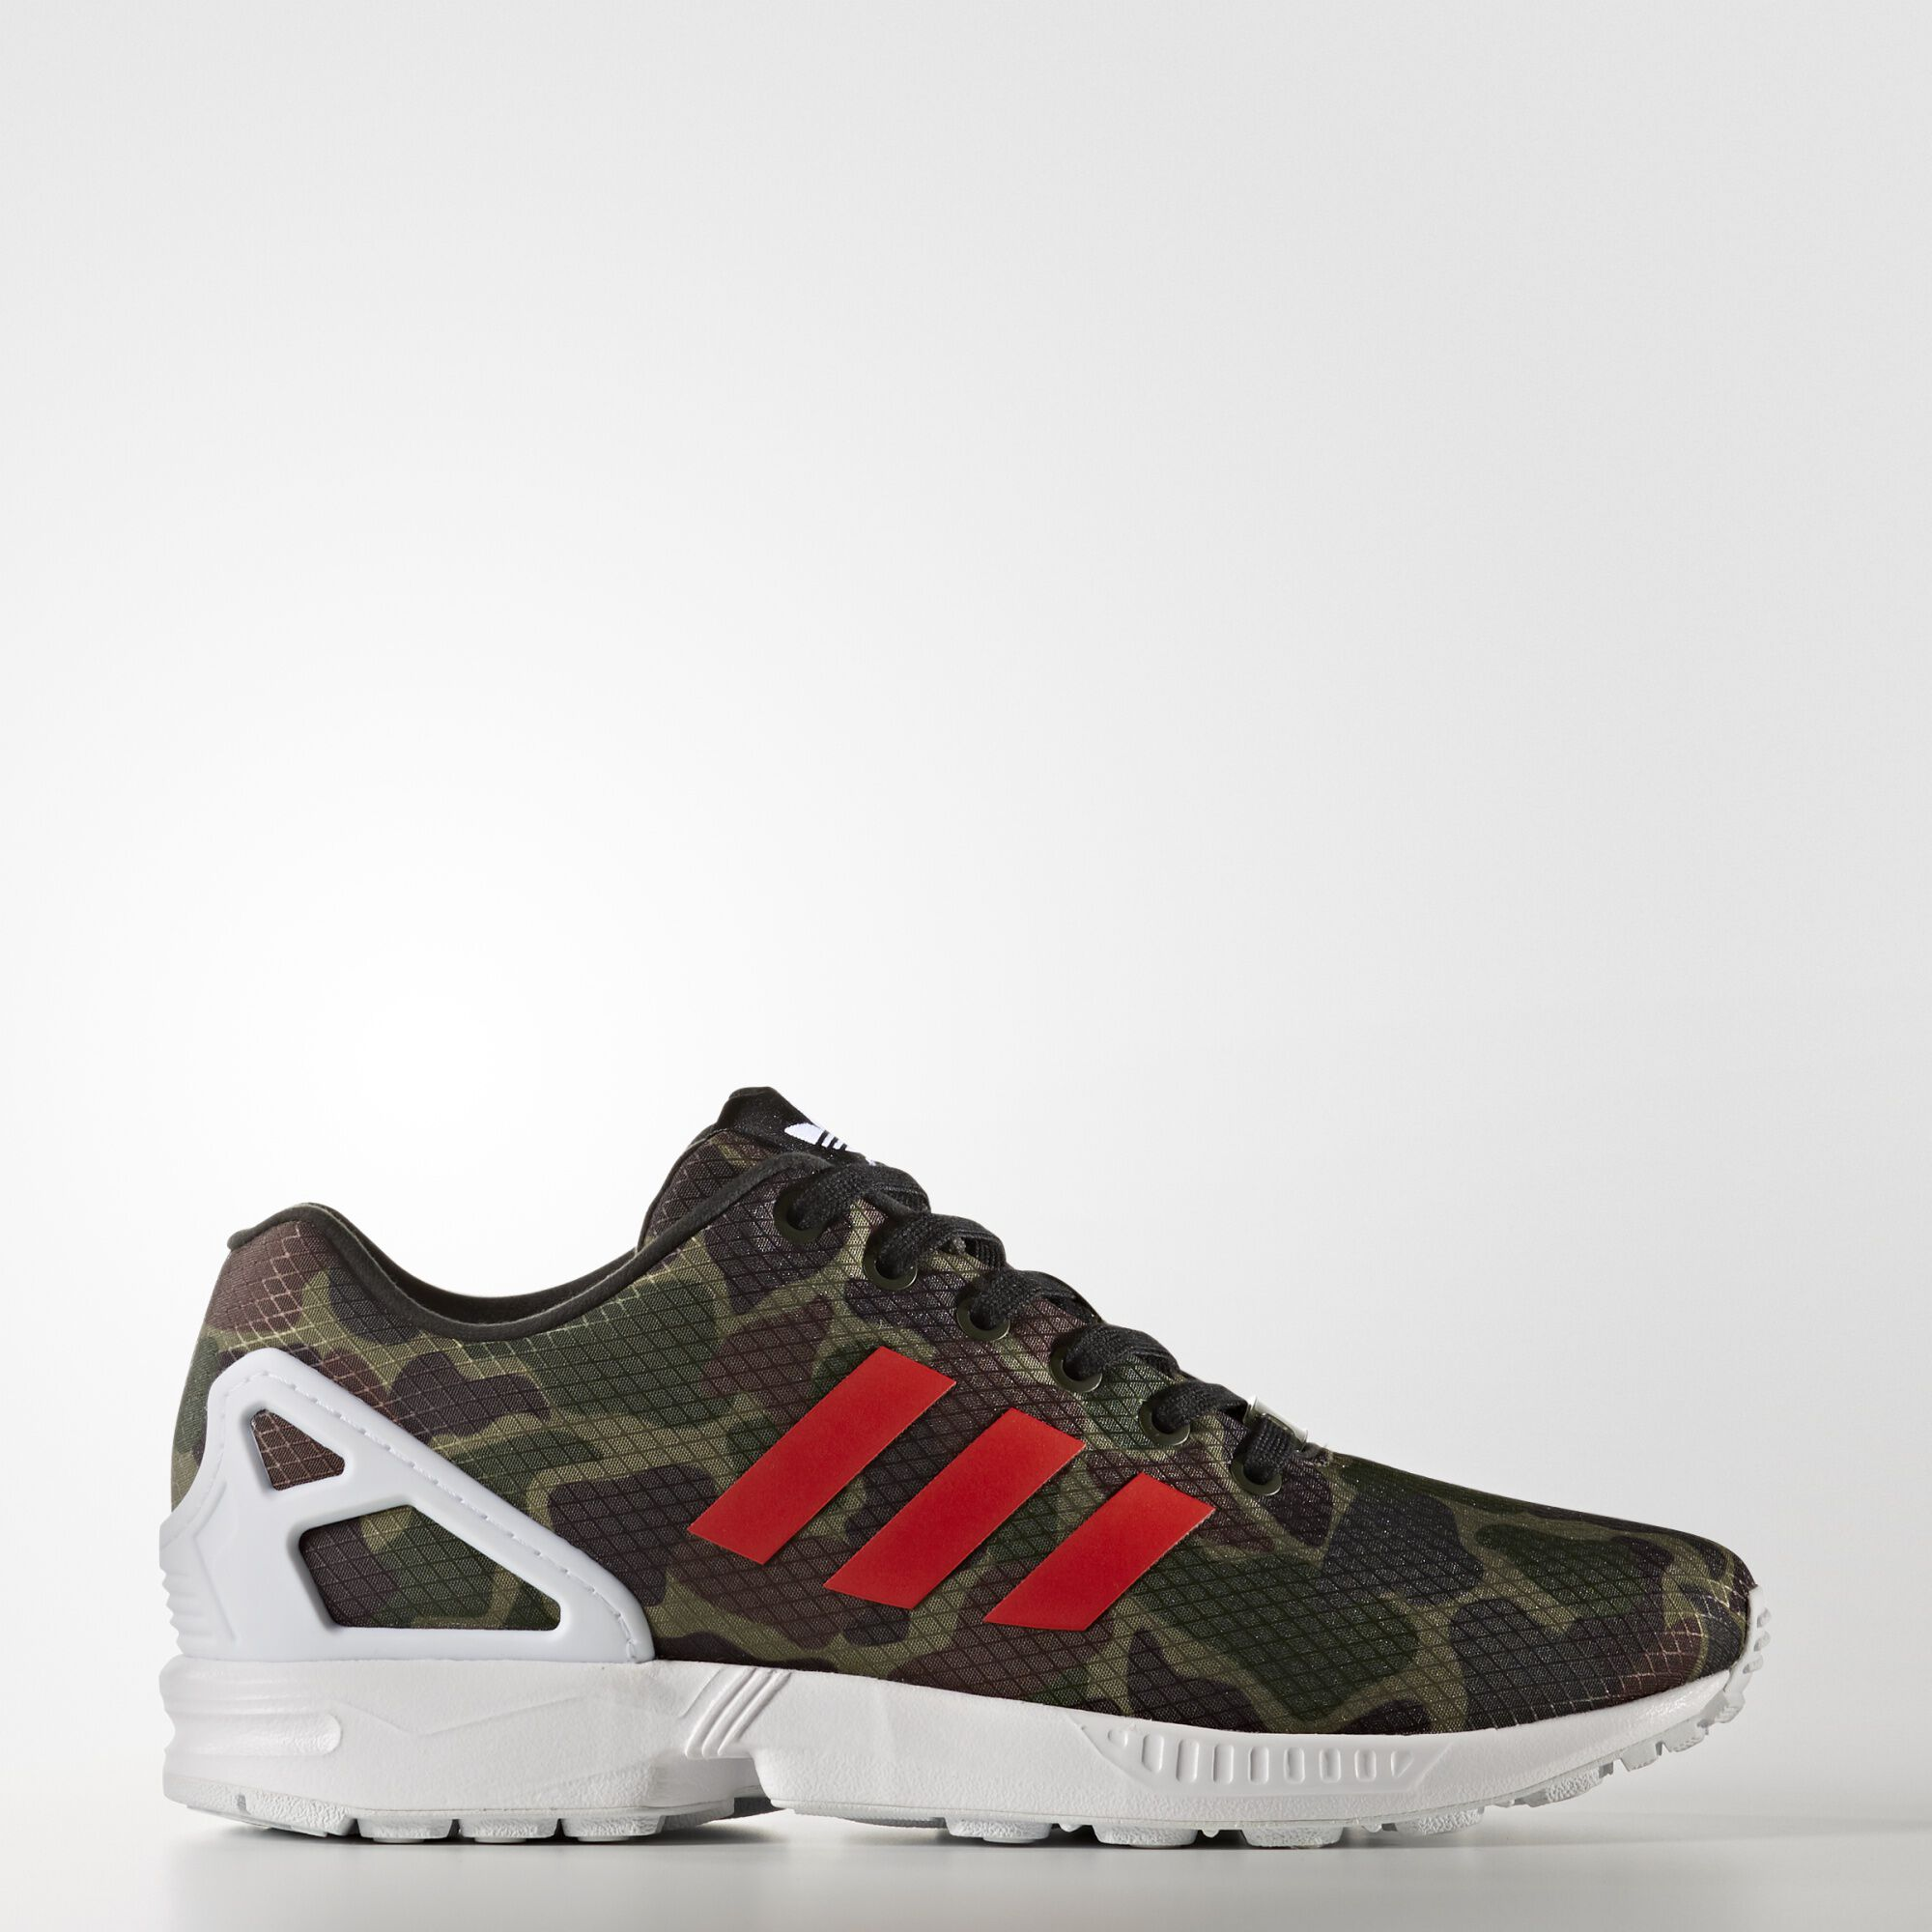 f602b5de4 Adidas Zx Flux Red And Black Prism wallbank-lfc.co.uk